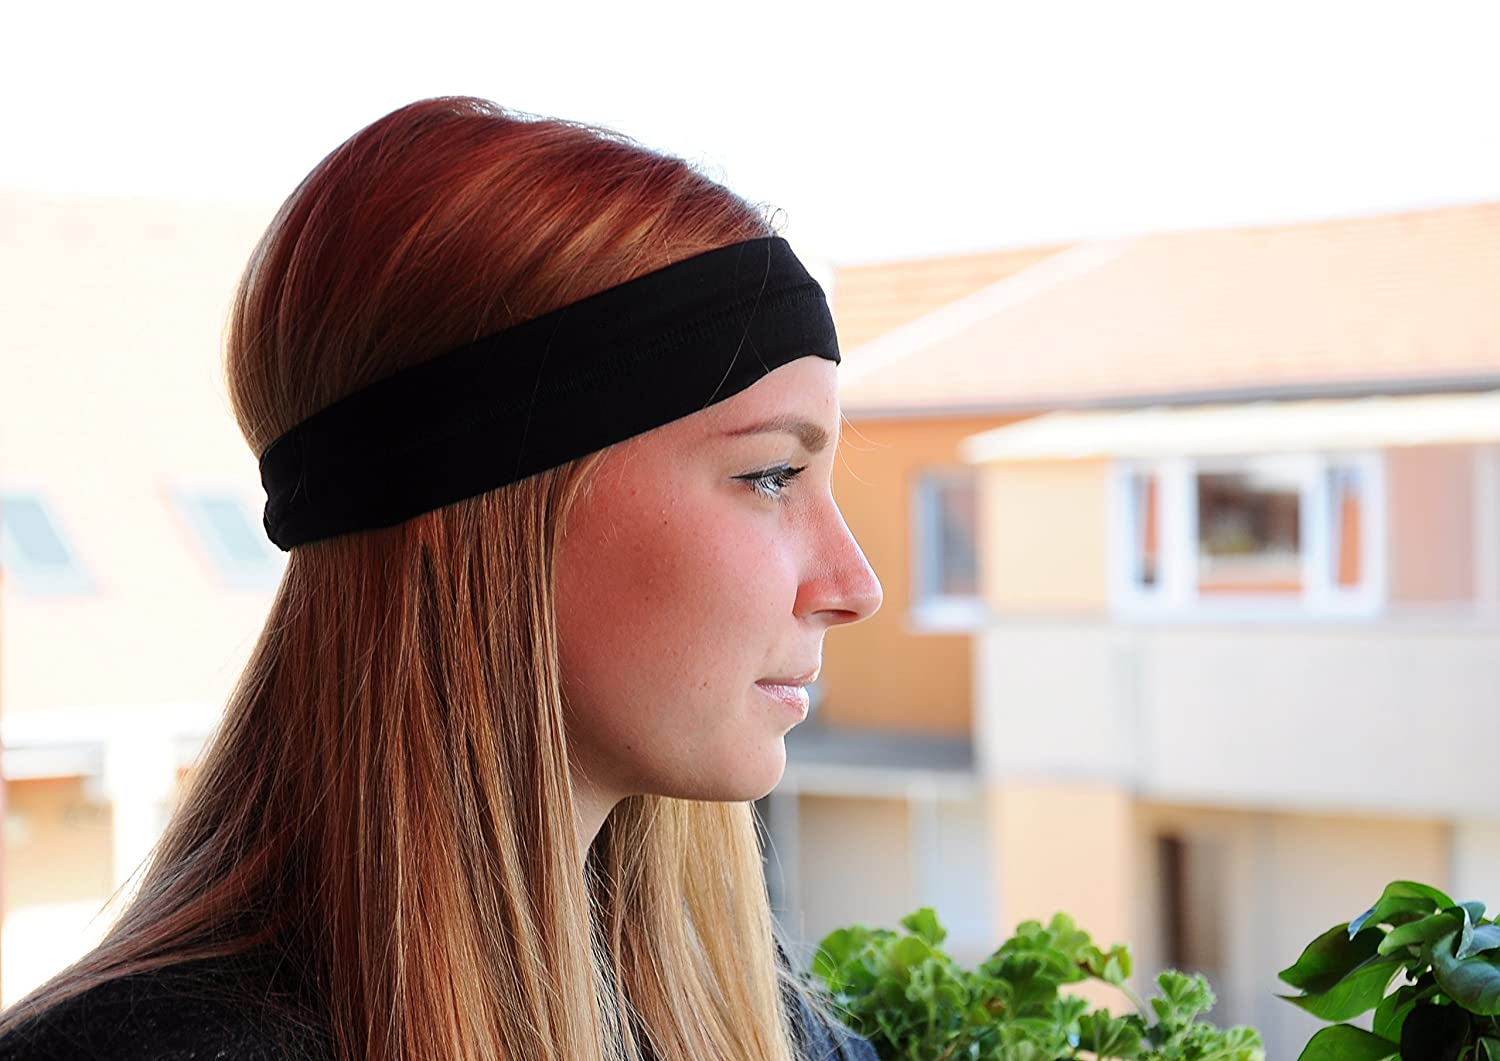 Ultra Lite Travel Headband (Pure Bamboo & Cotton) - Breathable, Lightweight, Quick Dry